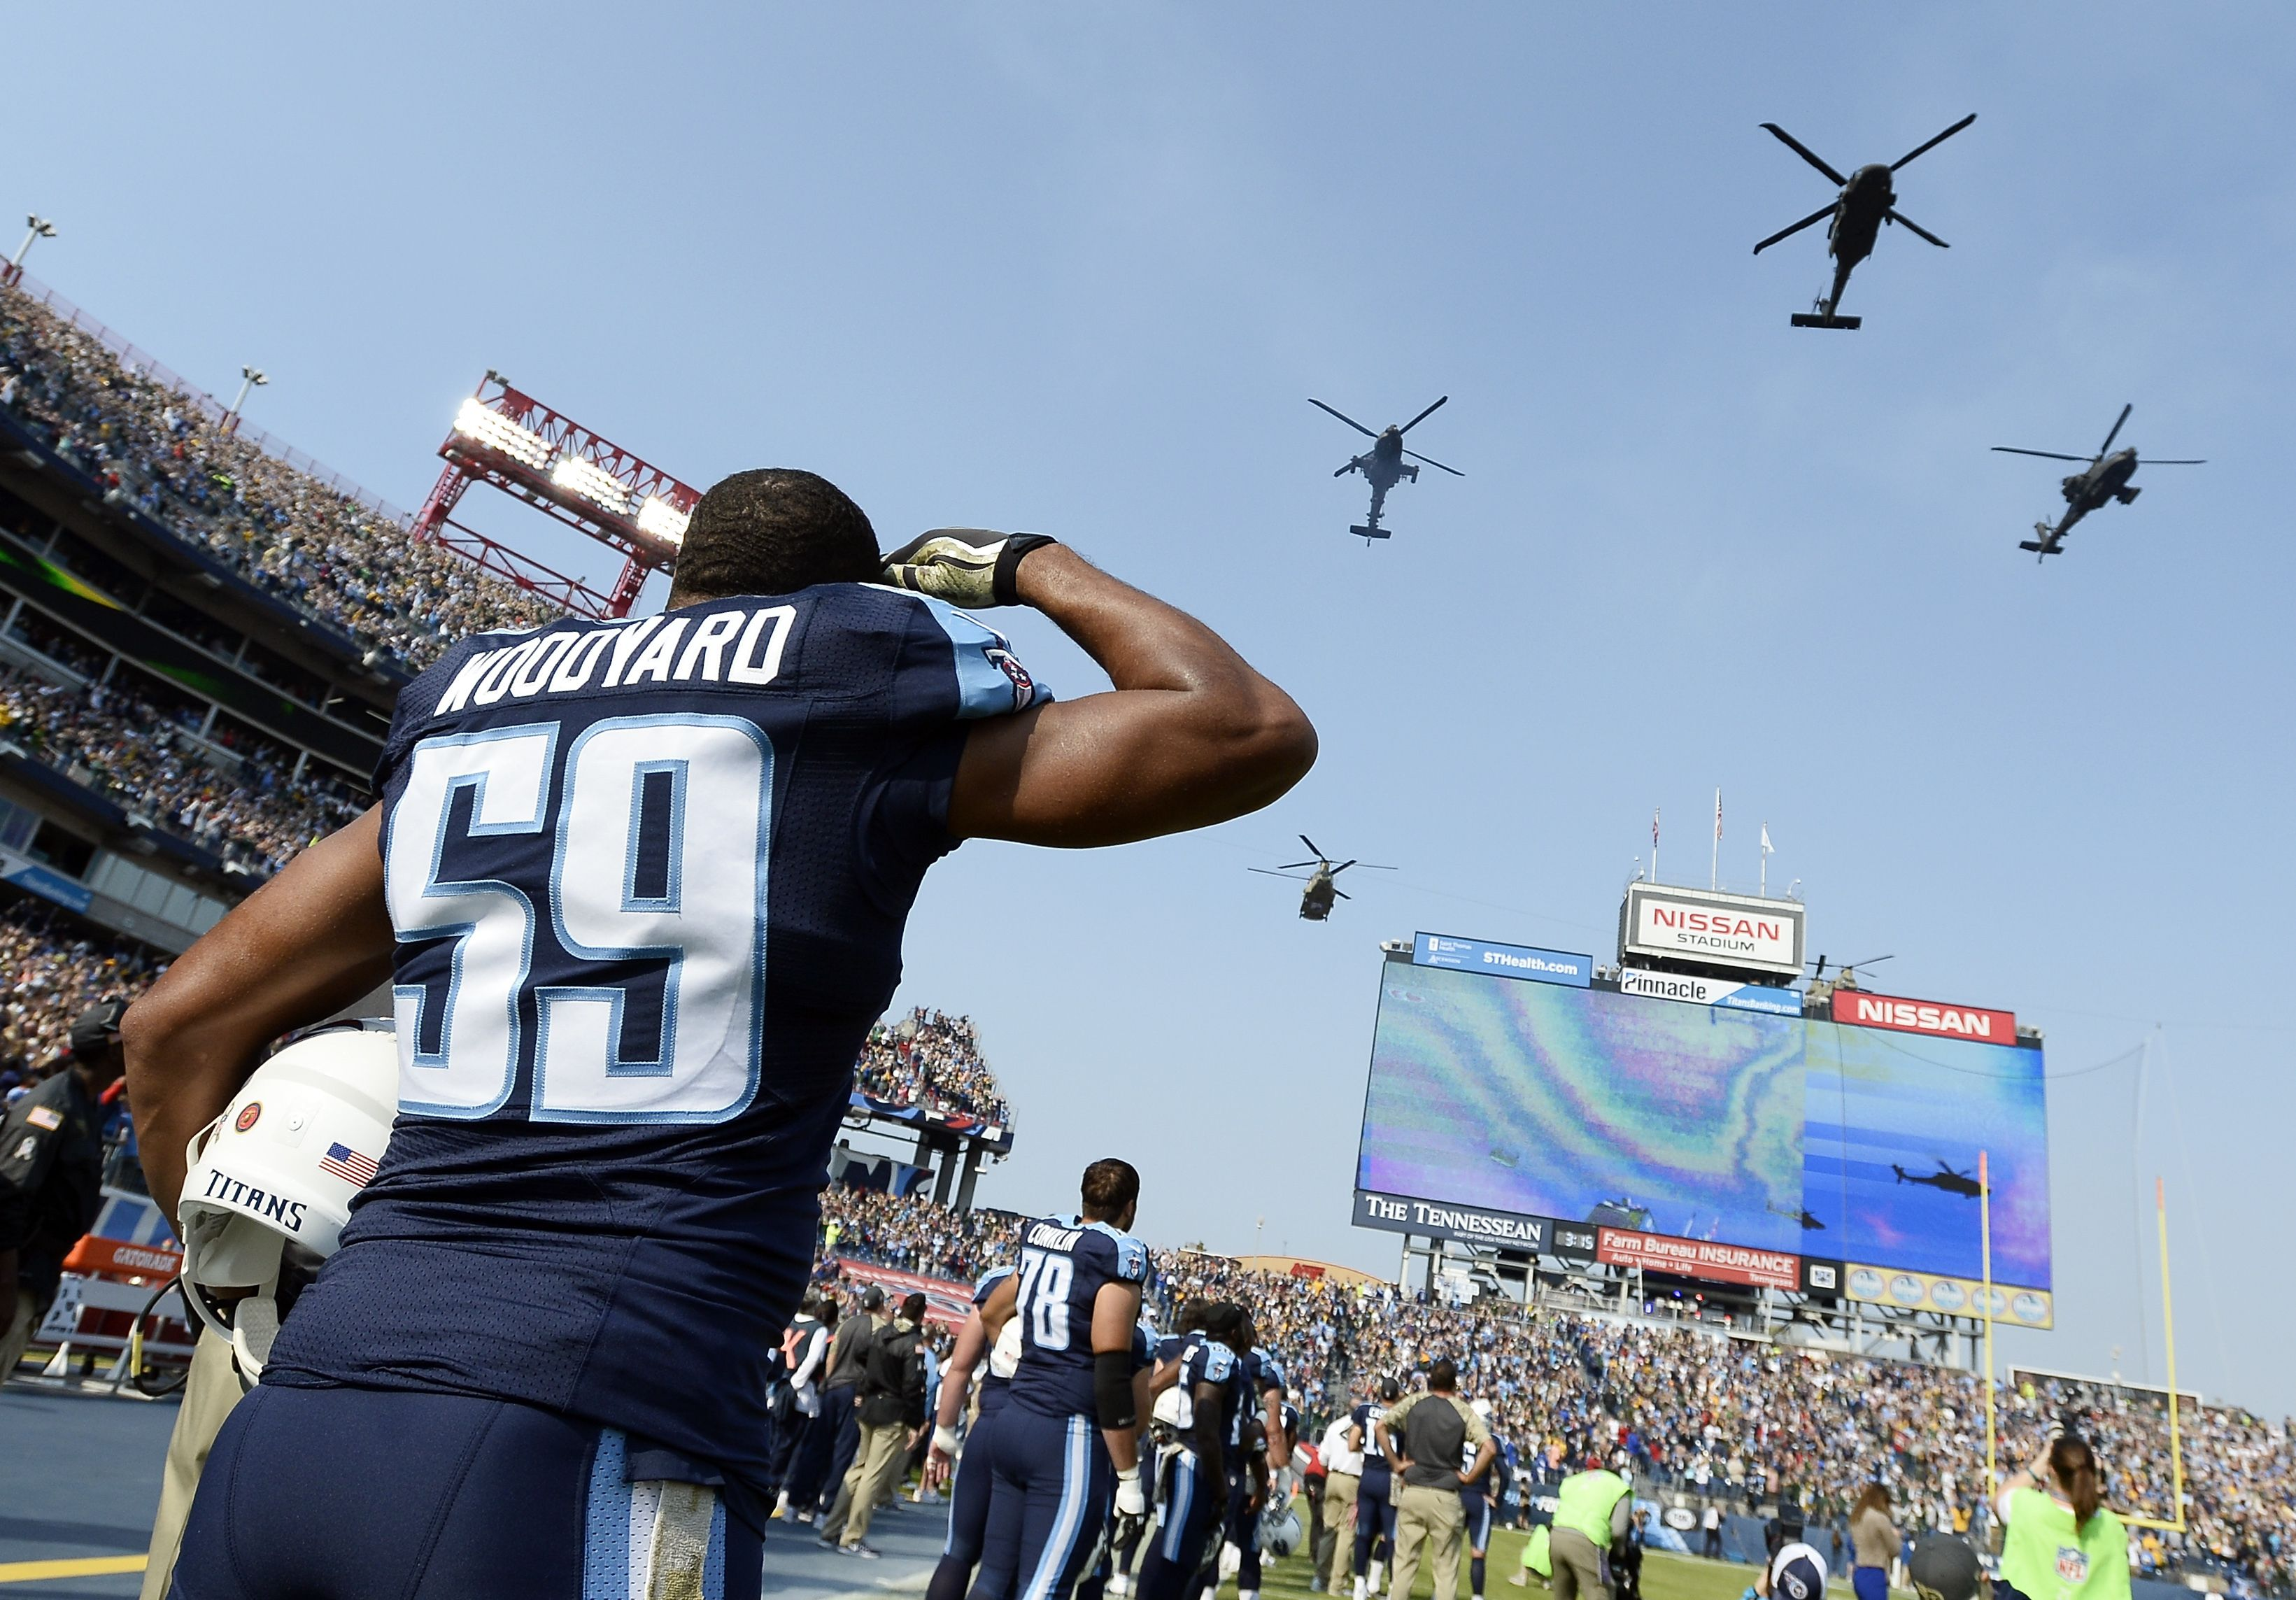 Titans Lb Wesley Woodyard Salutes A Pre Game Flyover Before The Titans Vs Packers Game In Week 10 D Titans